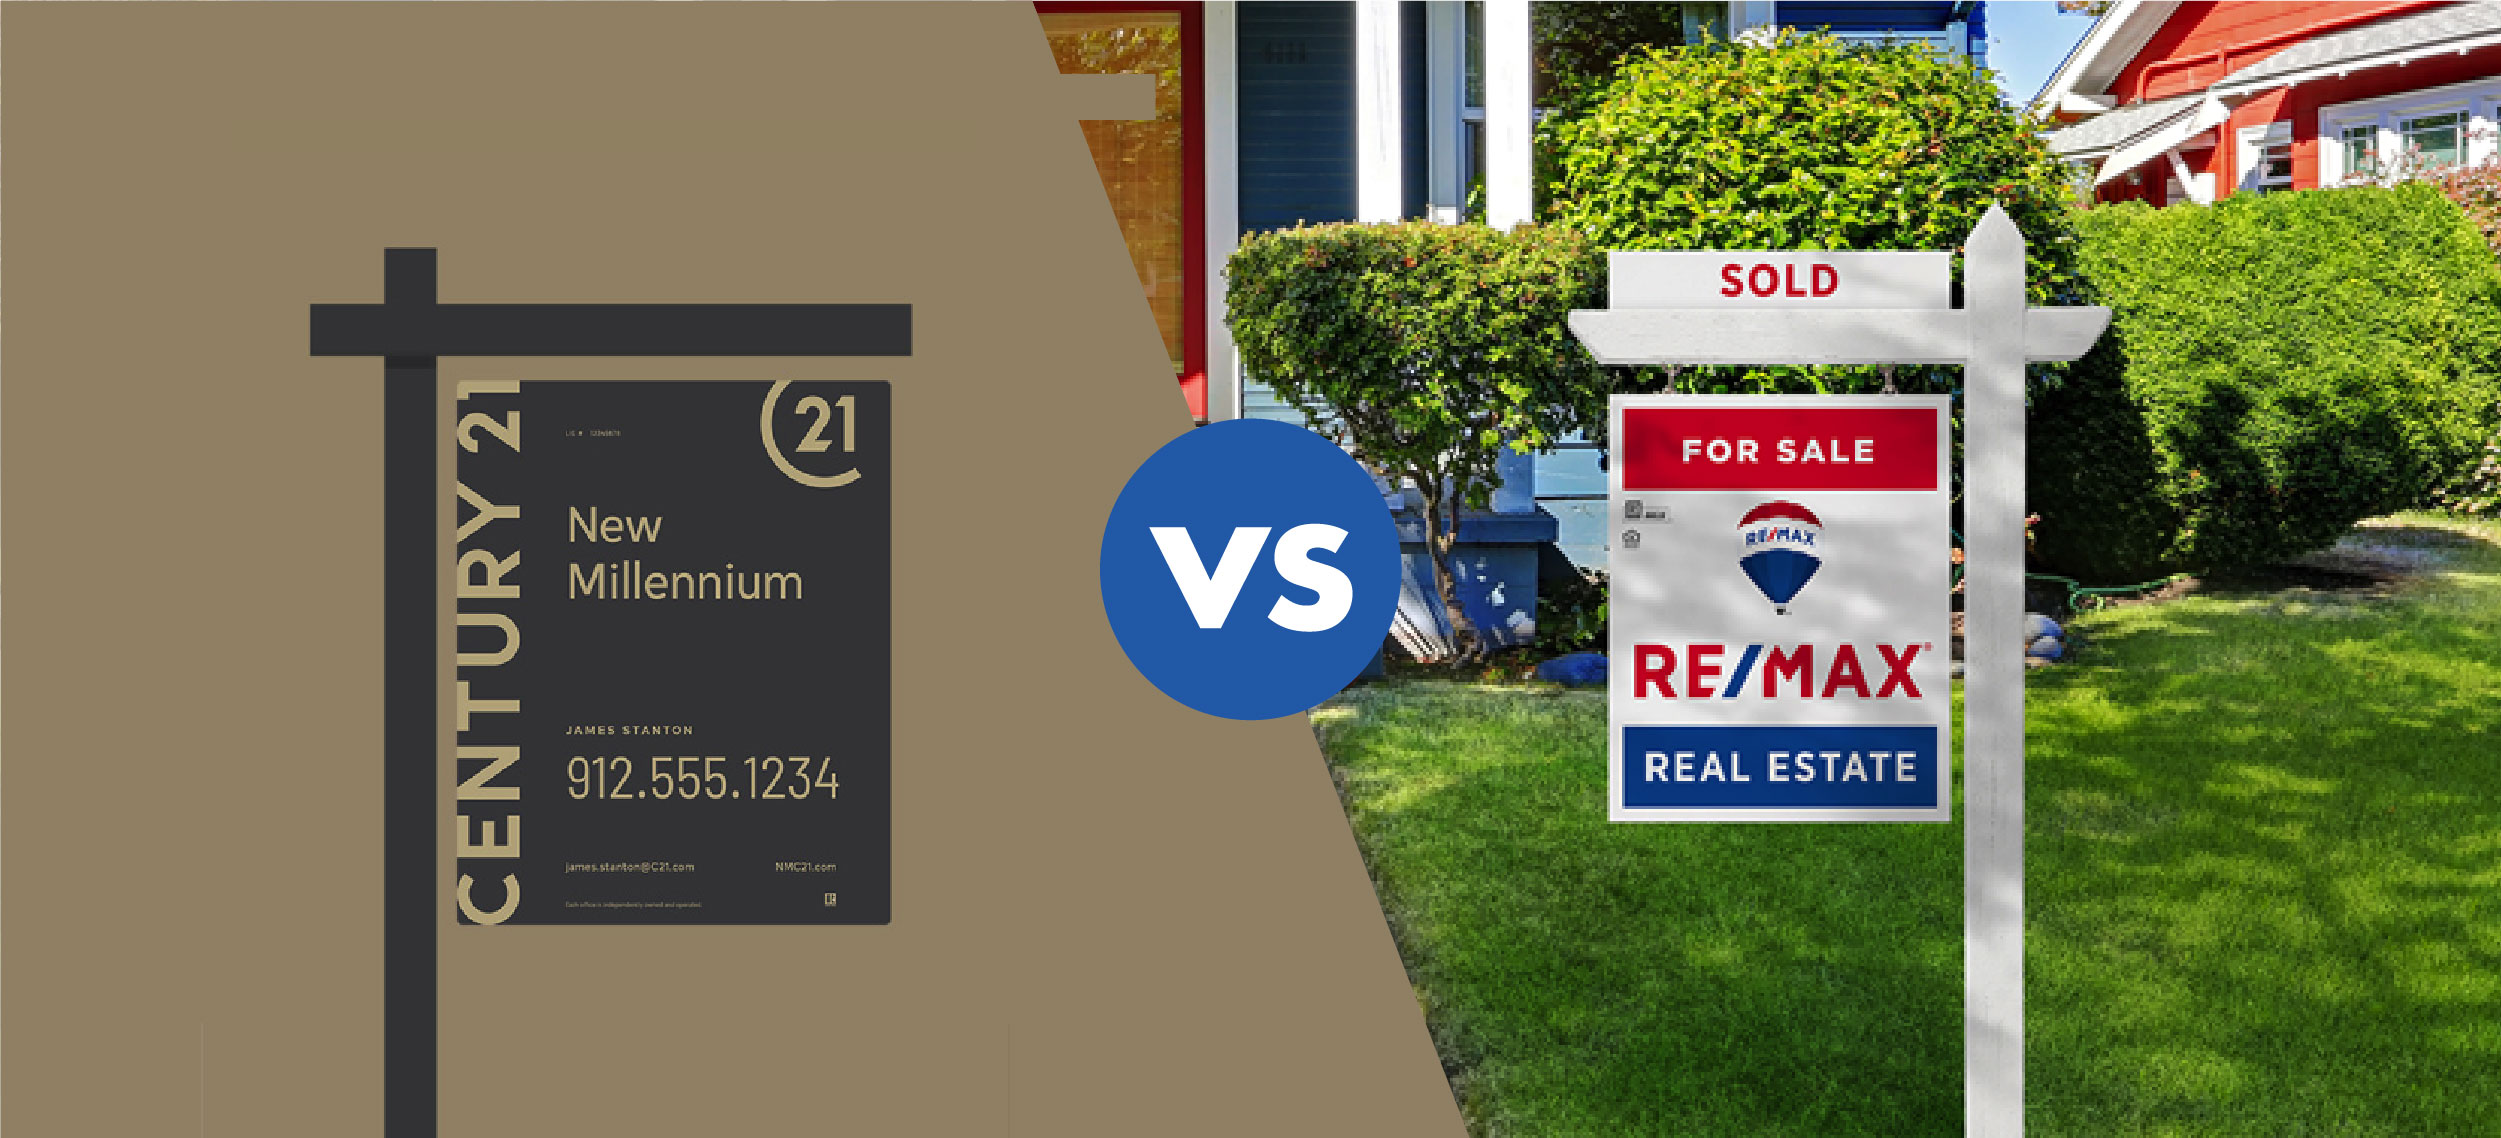 REMAX vs Century 21 - Dunphy & Company Blog